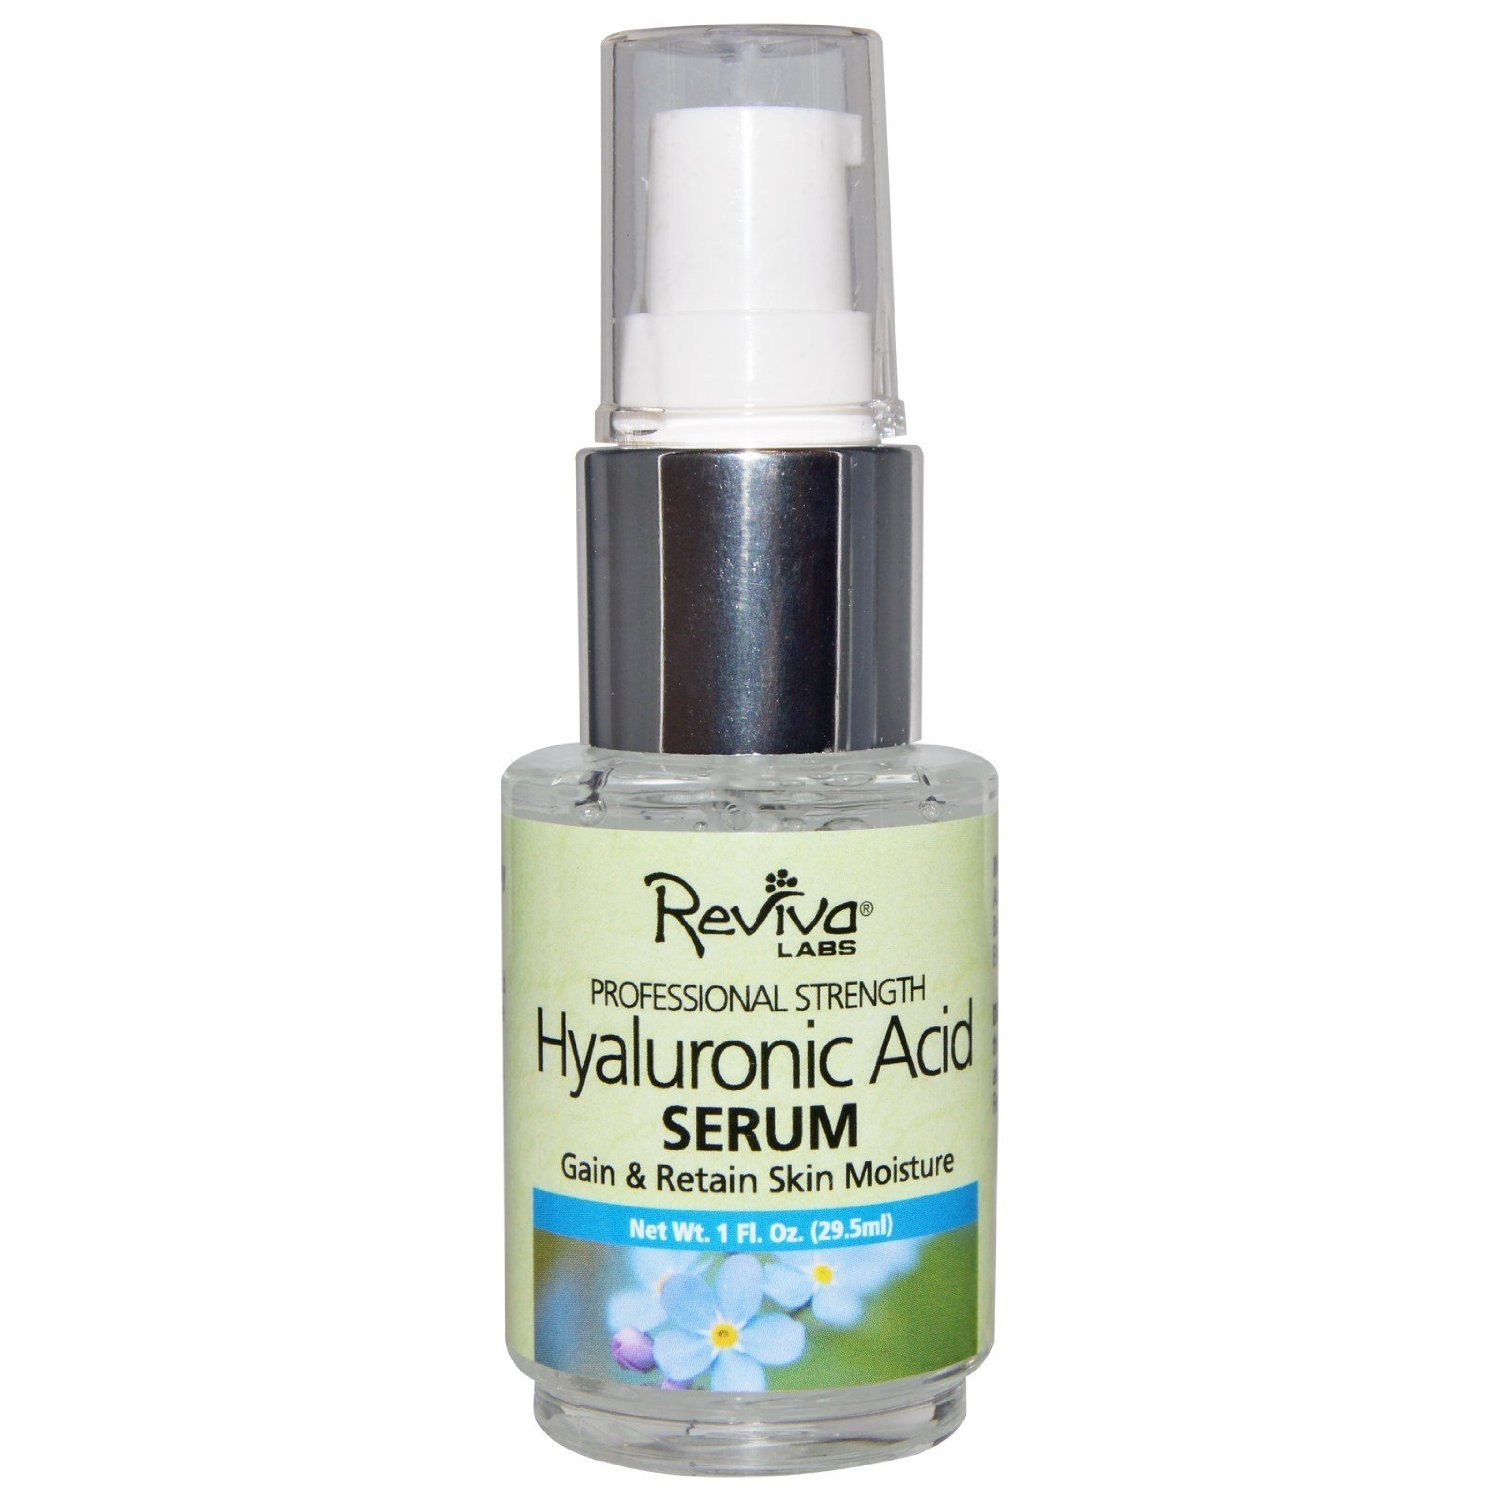 Reviva Labs Serum Hyaluronic Acid 1 Fz